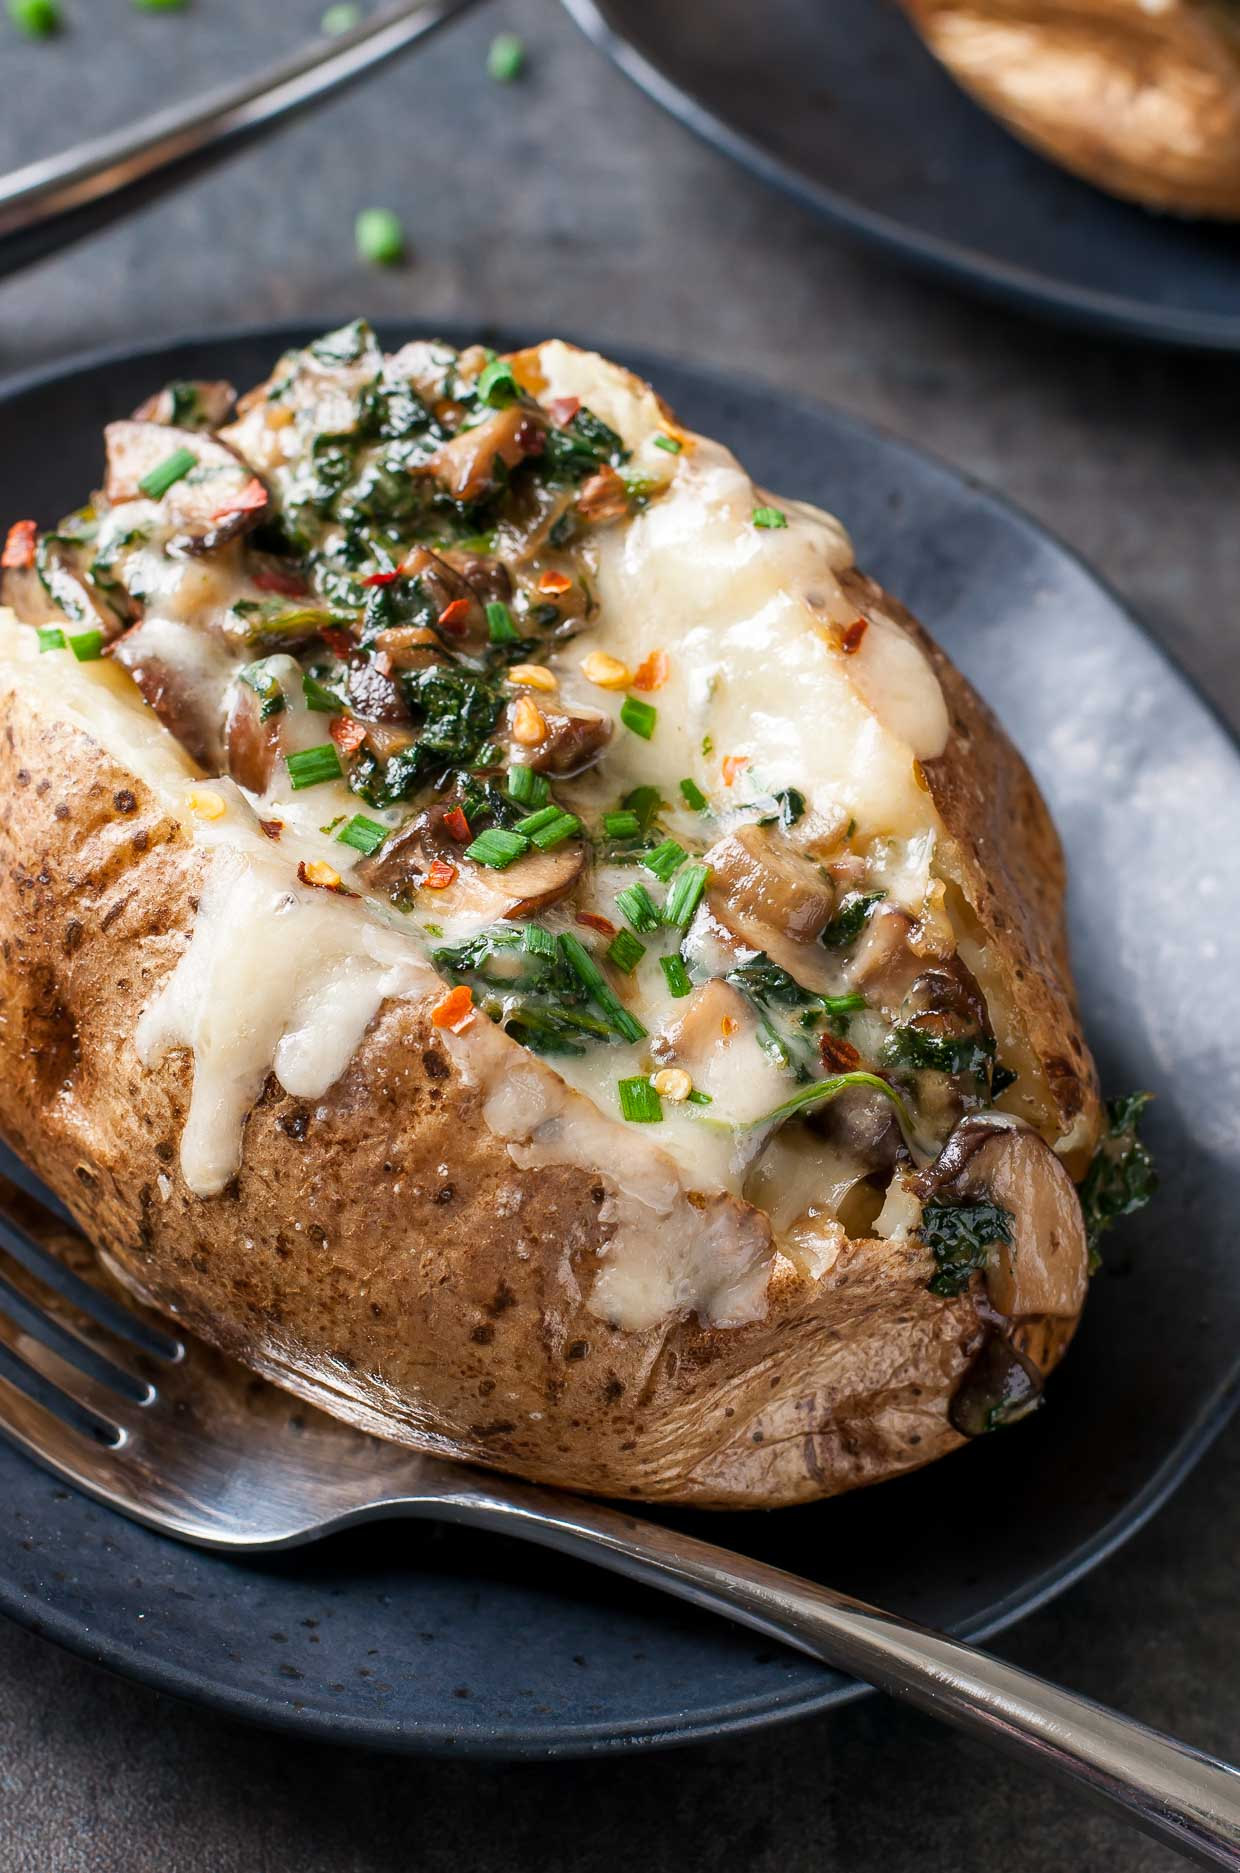 Cheesy Vegetarian Loaded Baked Potatoes with Spinach and Mushrooms